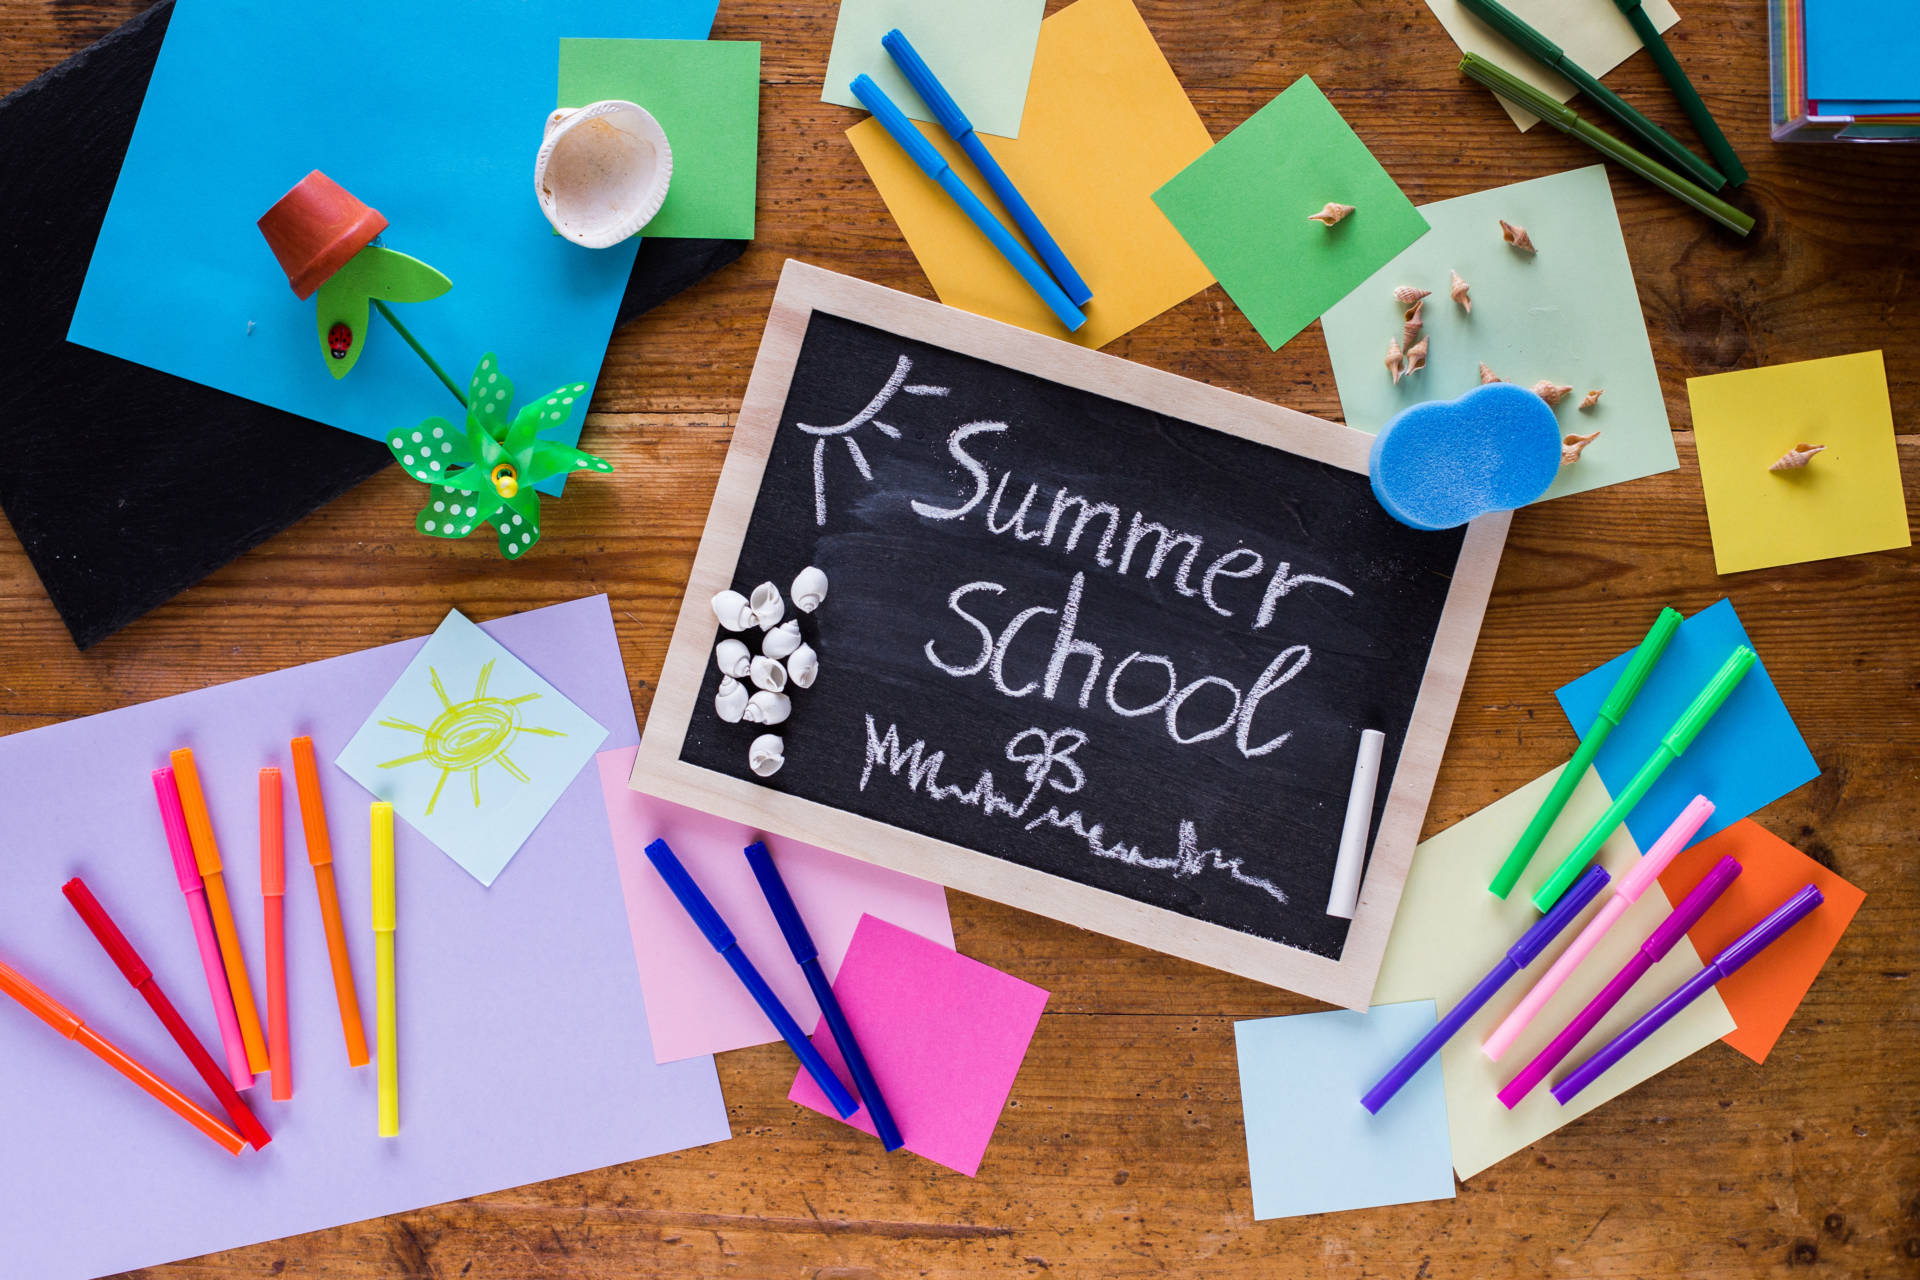 Calling All Bilingual/ESL Teachers: Summer School 2019